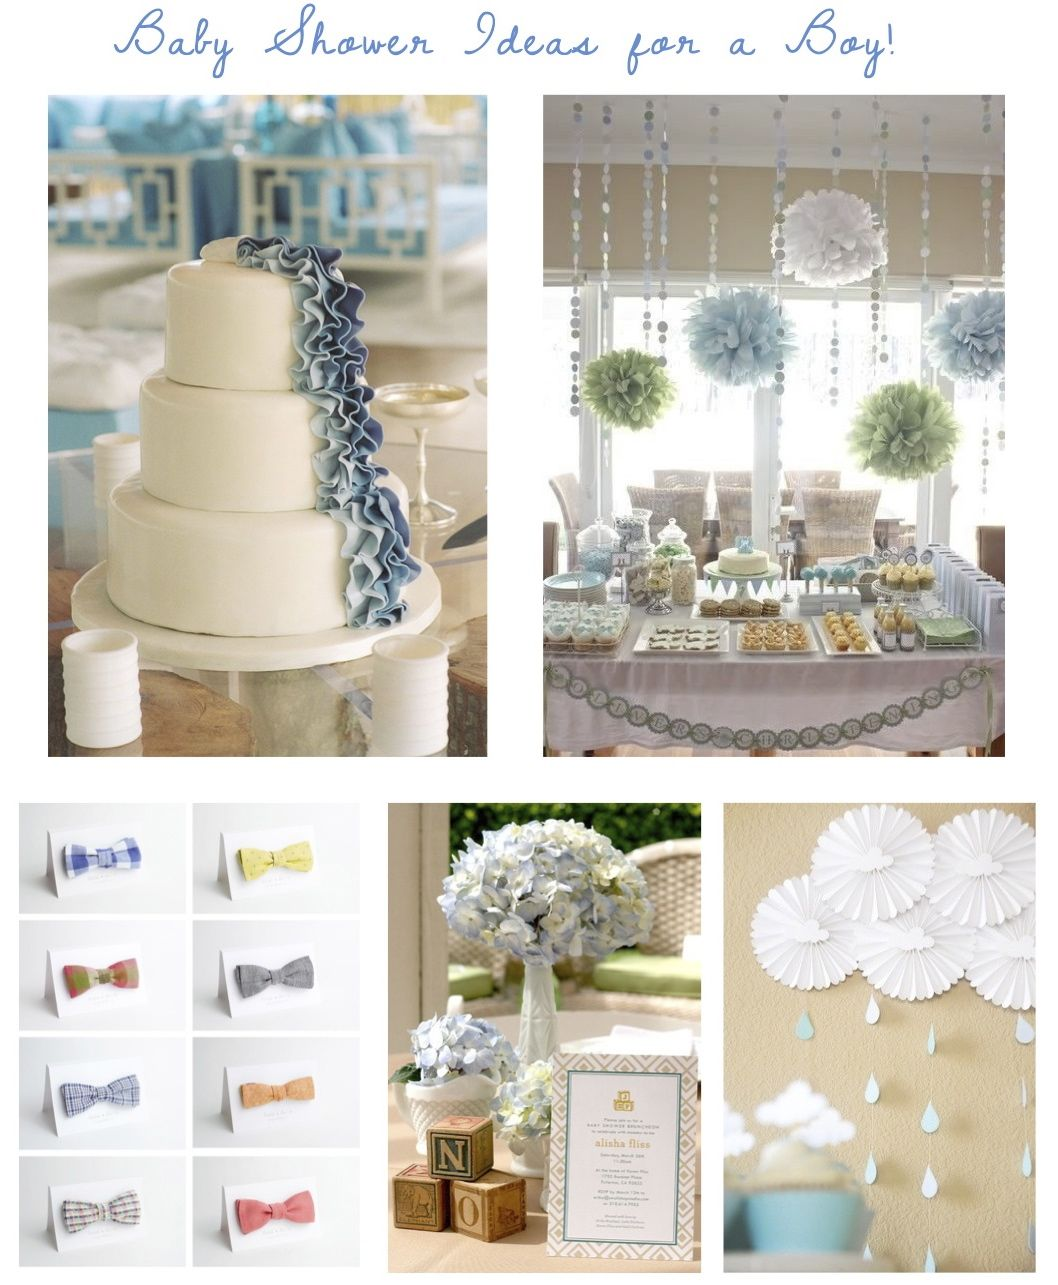 by event finds baby shower ideas for a boy baby shower ideas for a boy